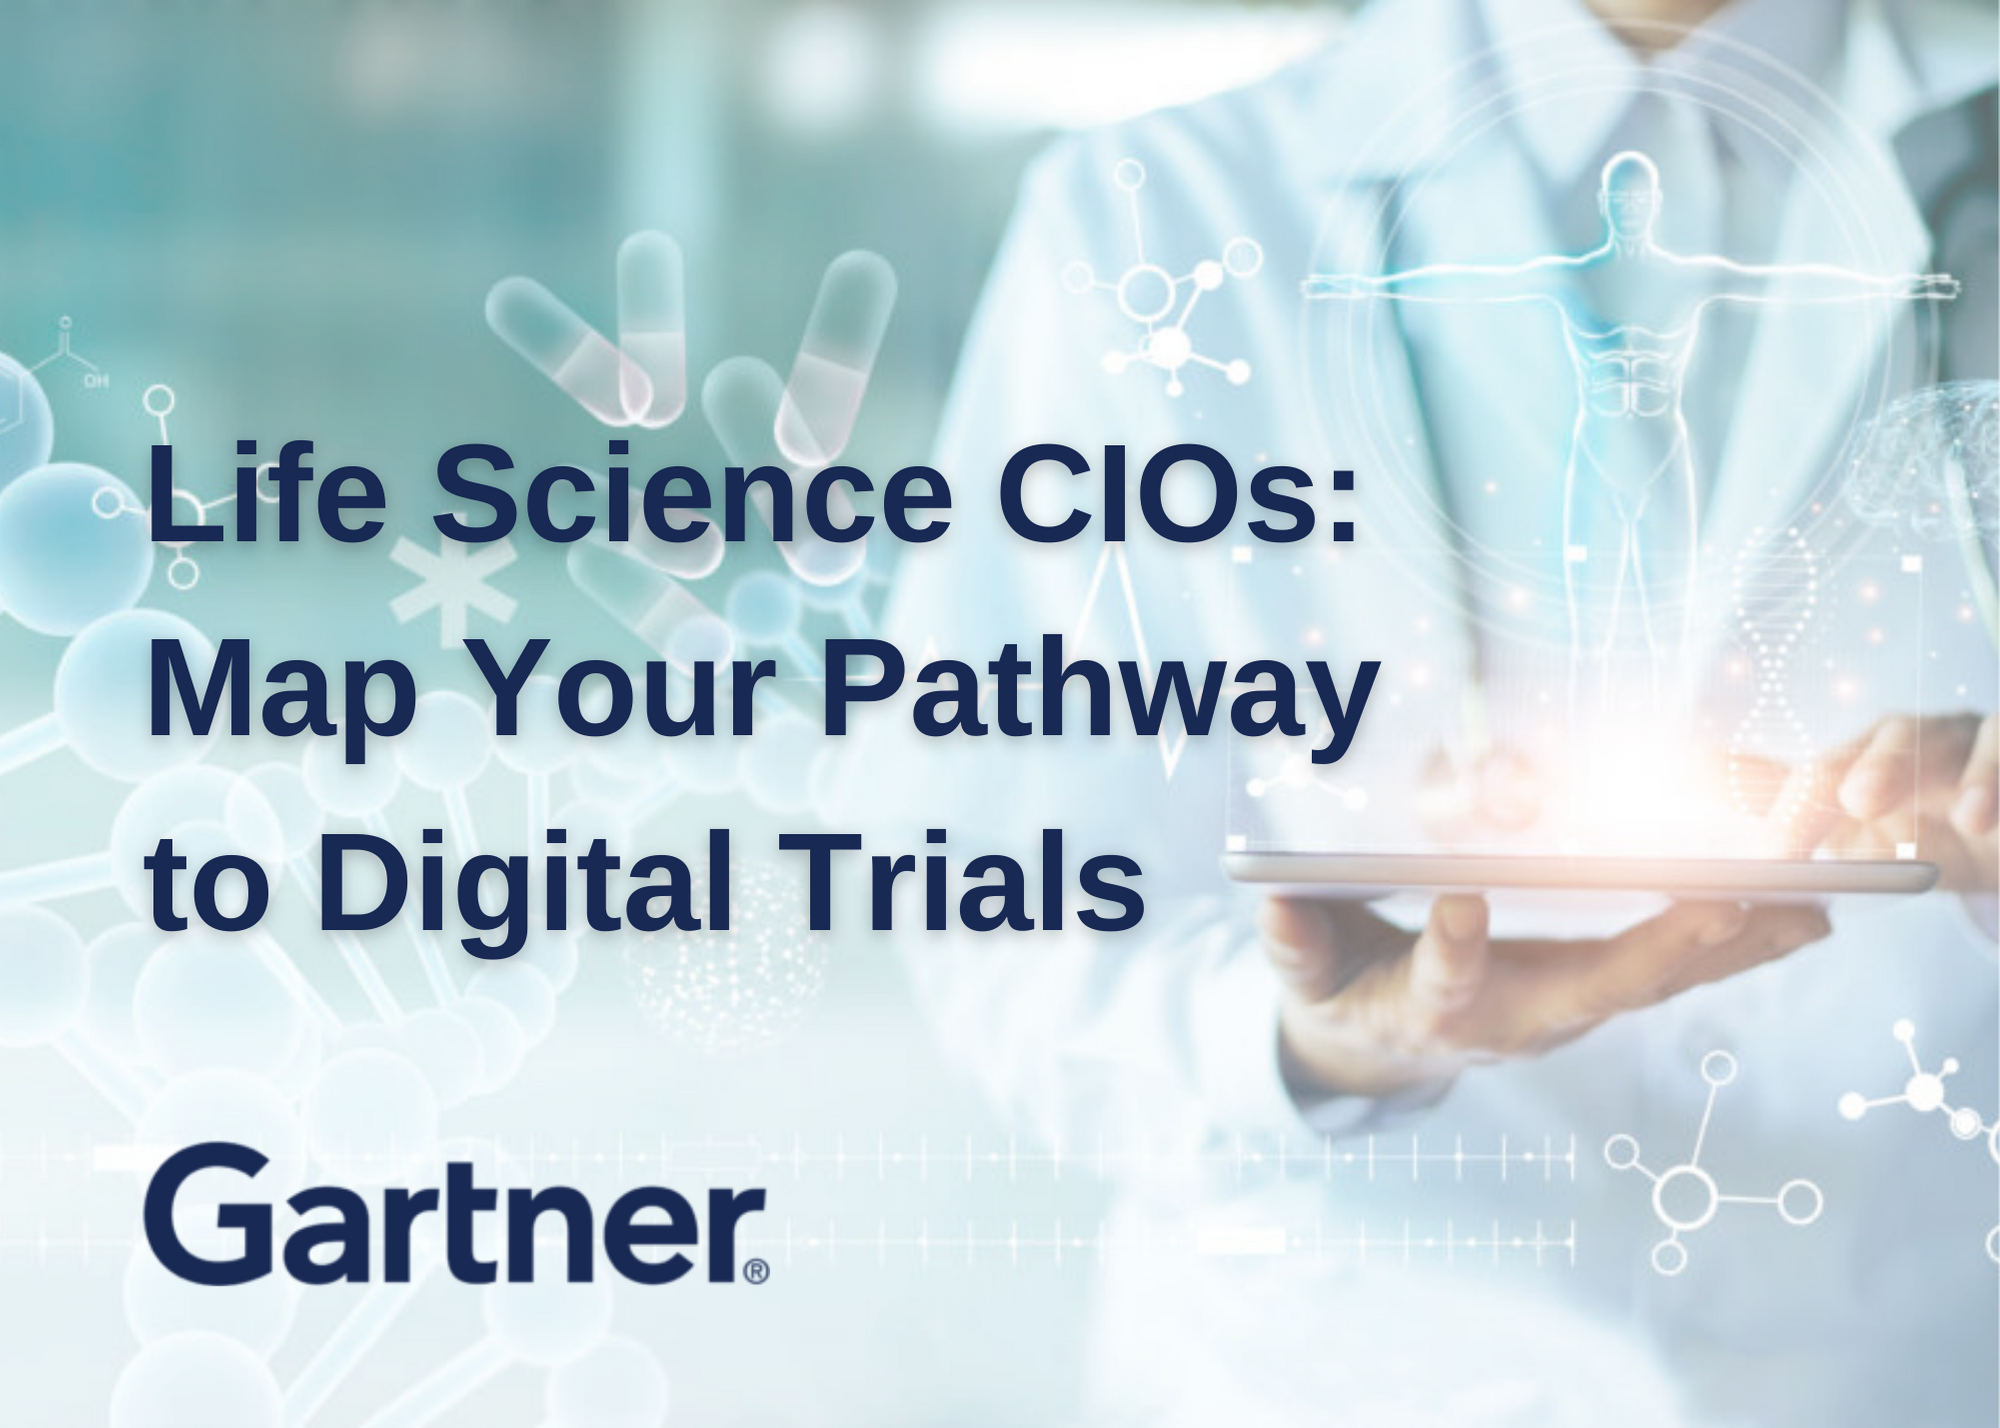 Life Science CIOs: Map Your Pathway to Digital Trials